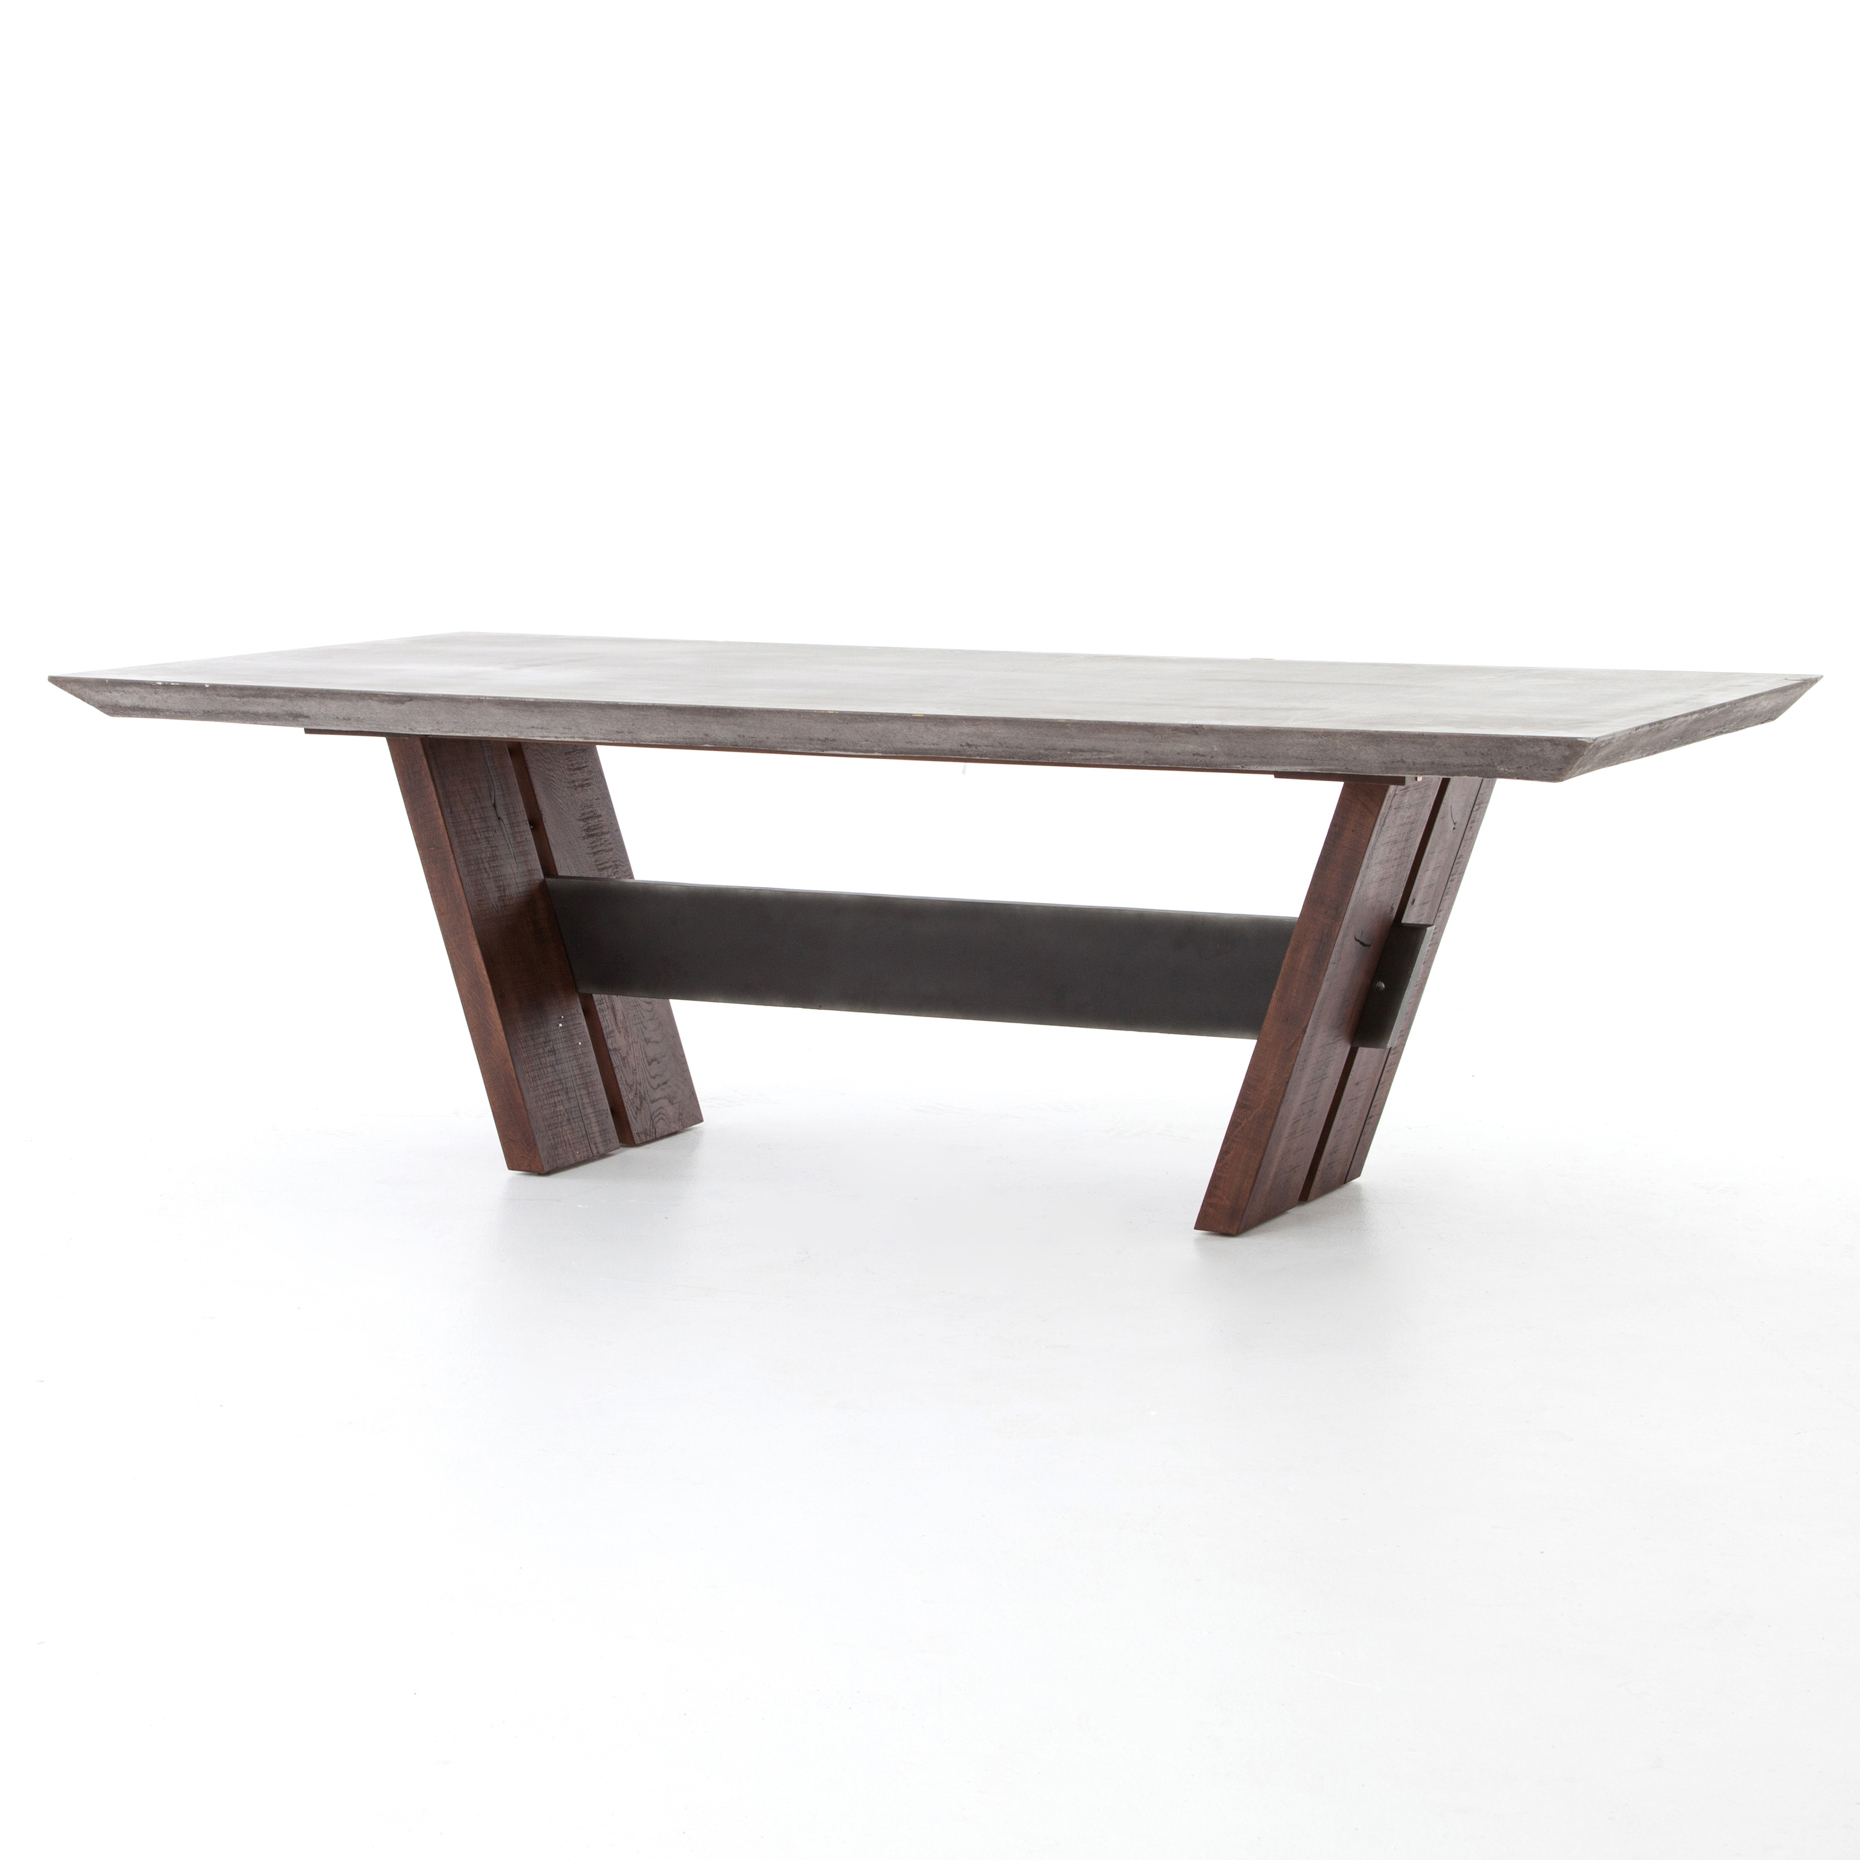 Rocio Industrial Rustic Angled Concrete Dining Table